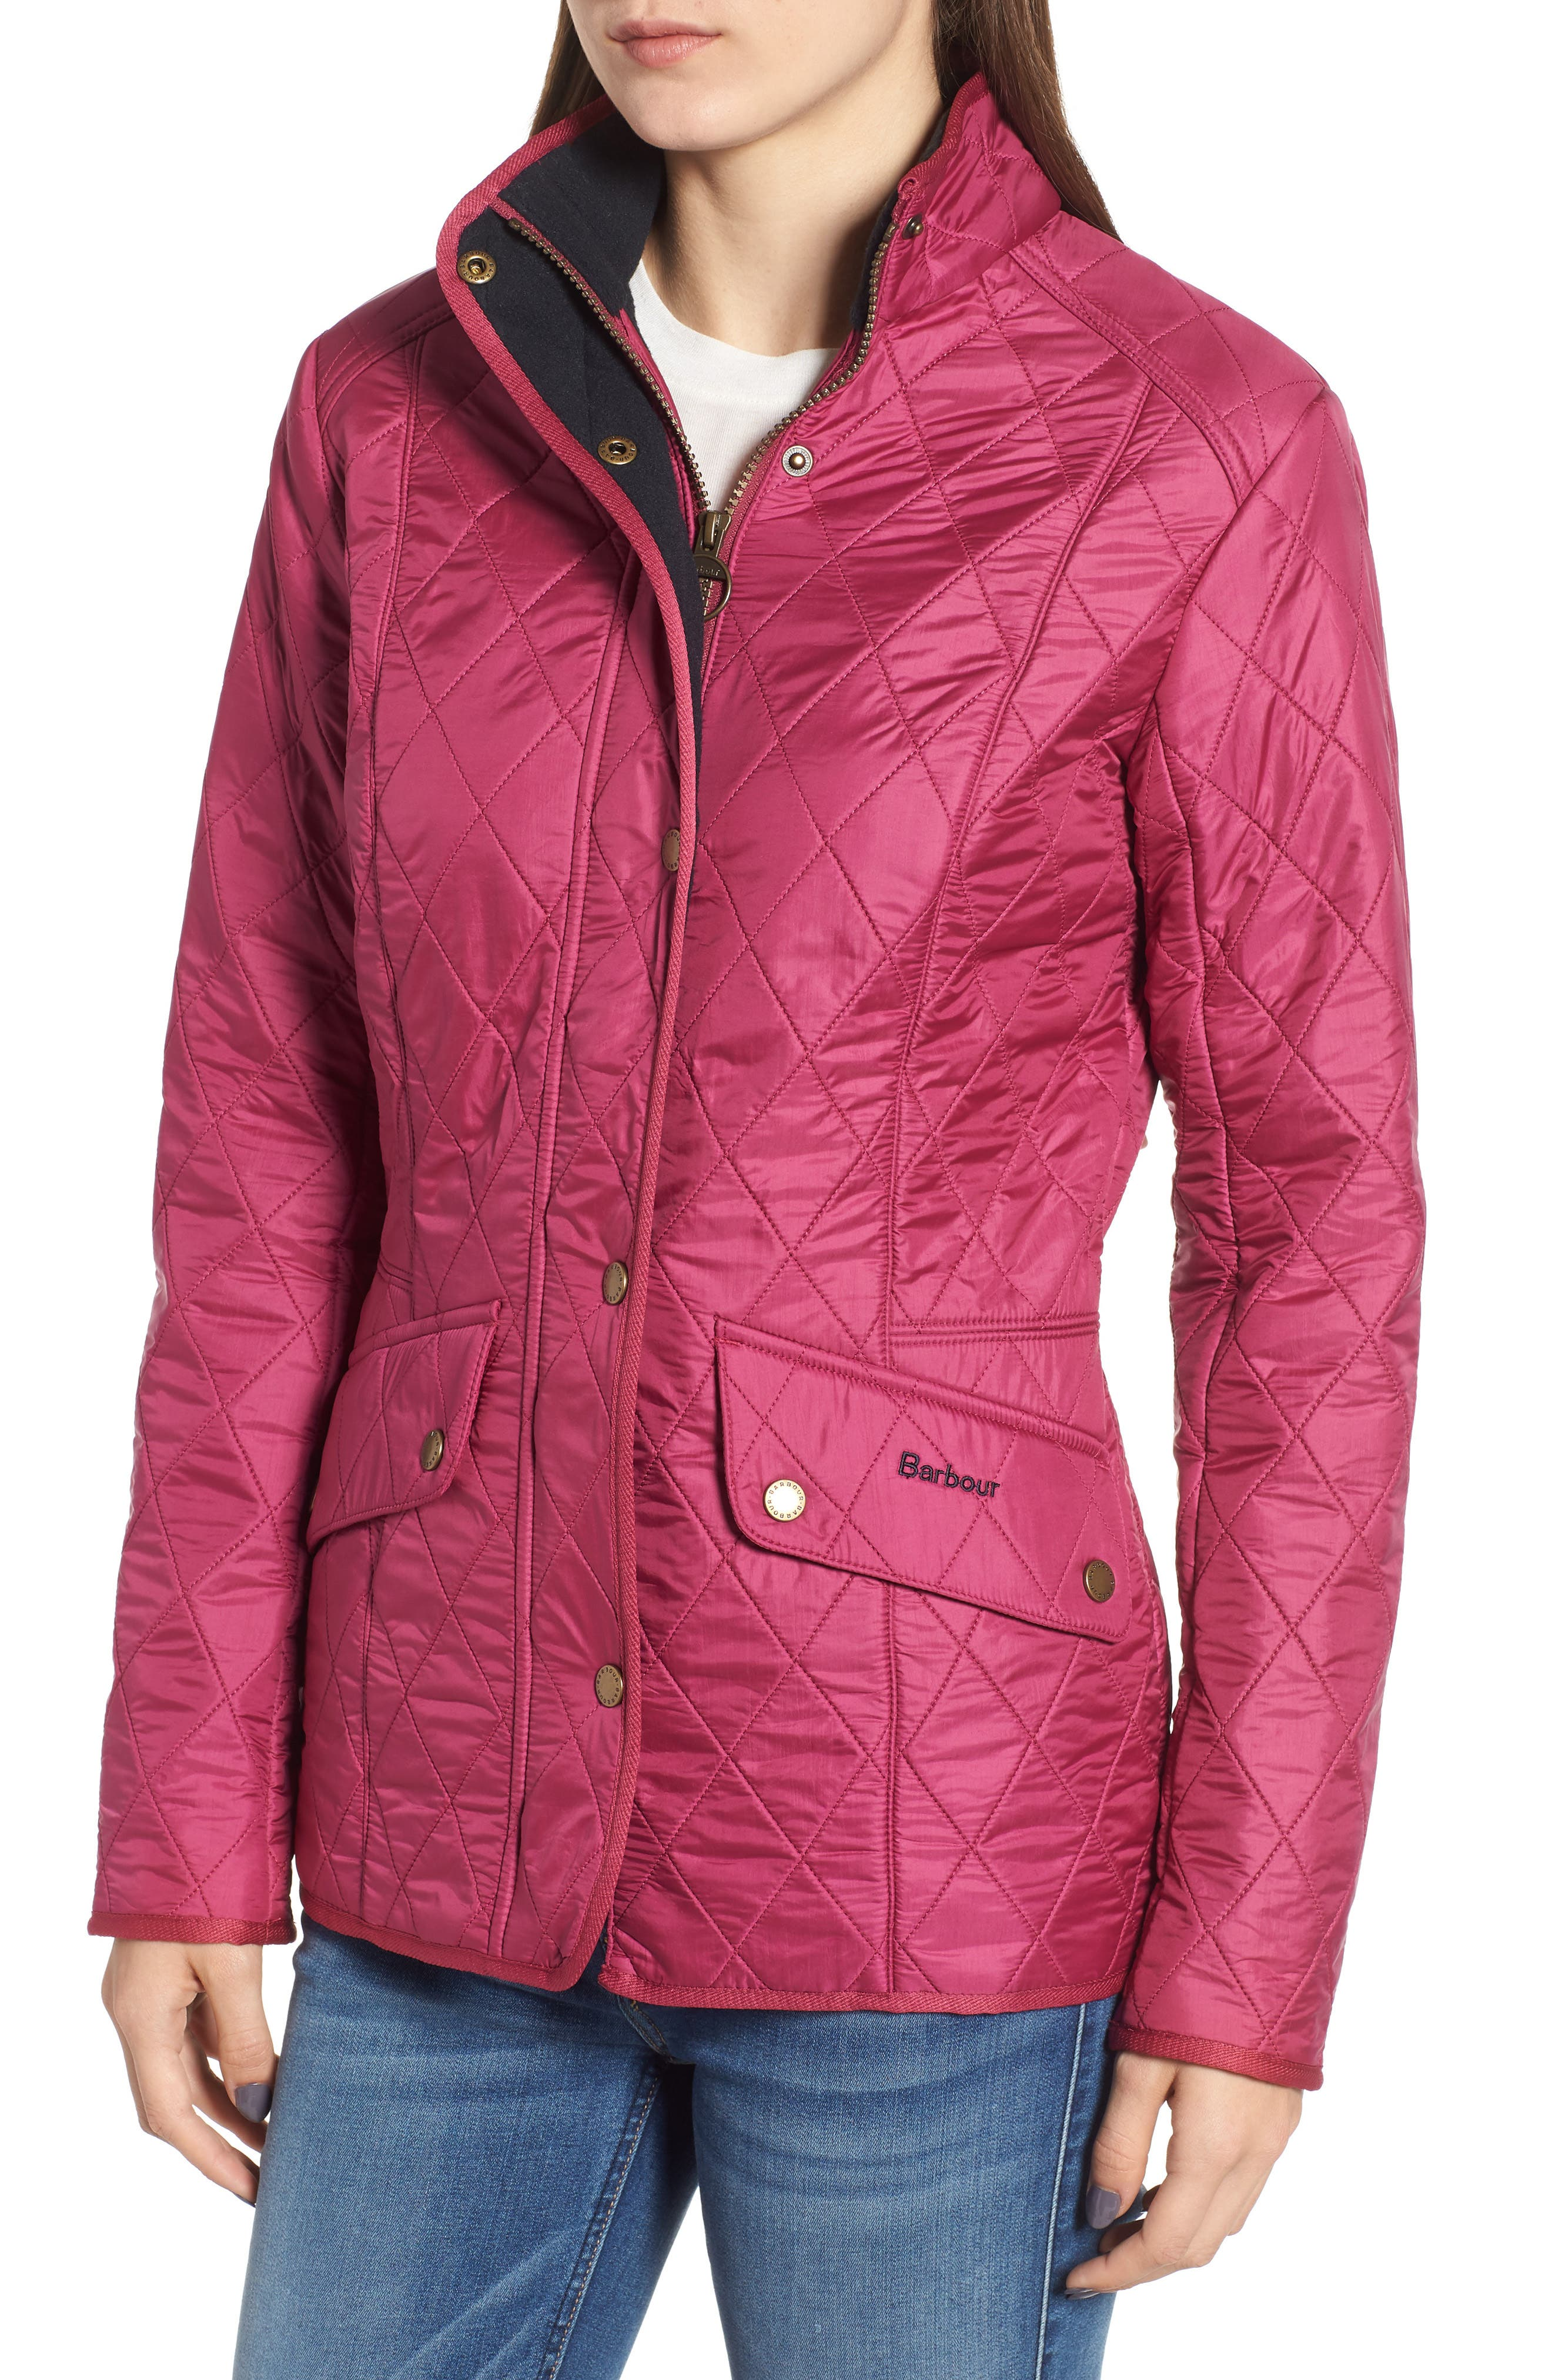 'Cavalry' Quilted Jacket,                             Alternate thumbnail 4, color,                             BERRY PINK / NAVY